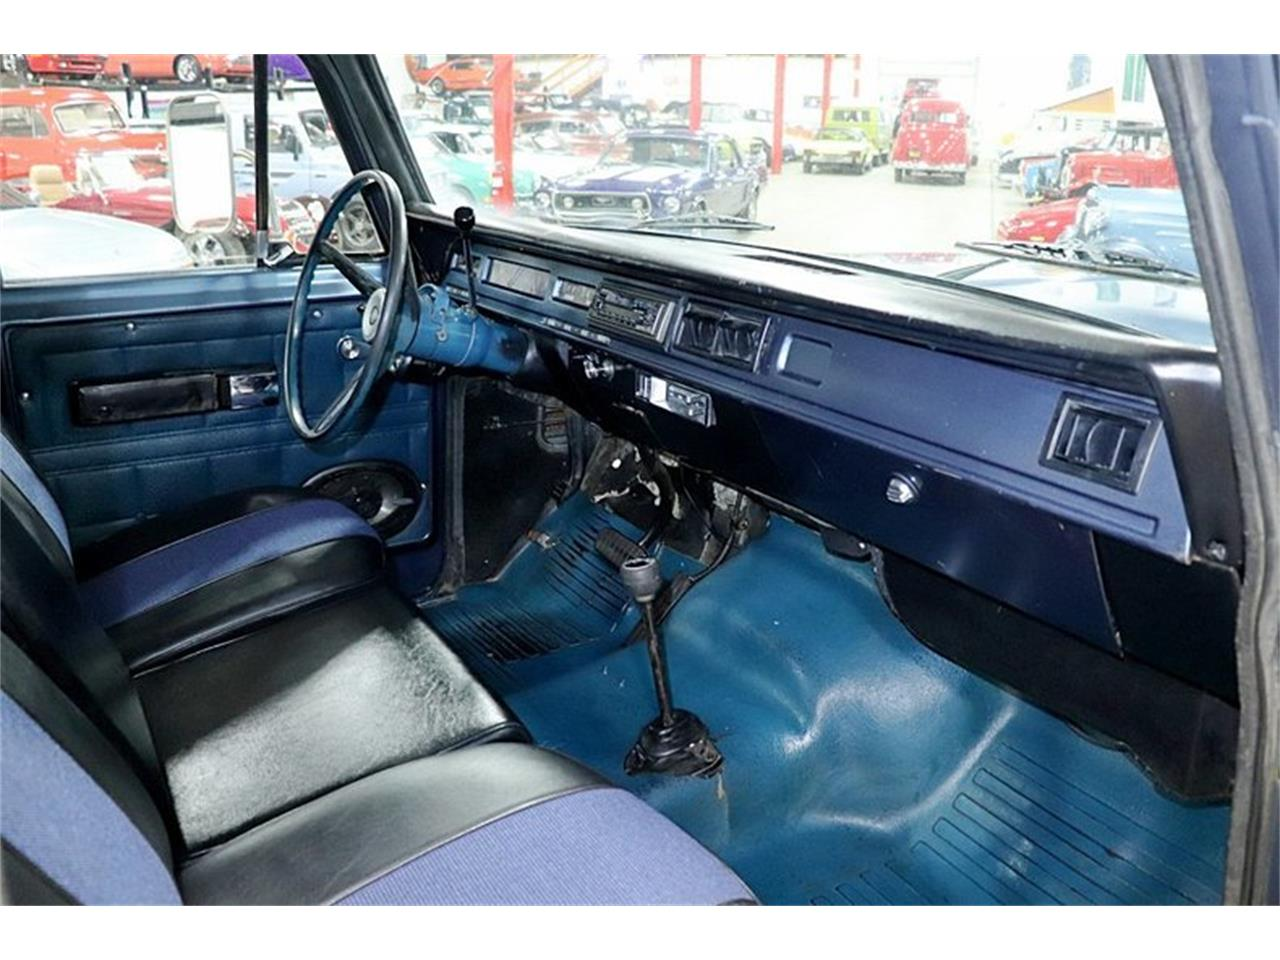 Large Picture of 1973 International Harvester located in Michigan - Q50E